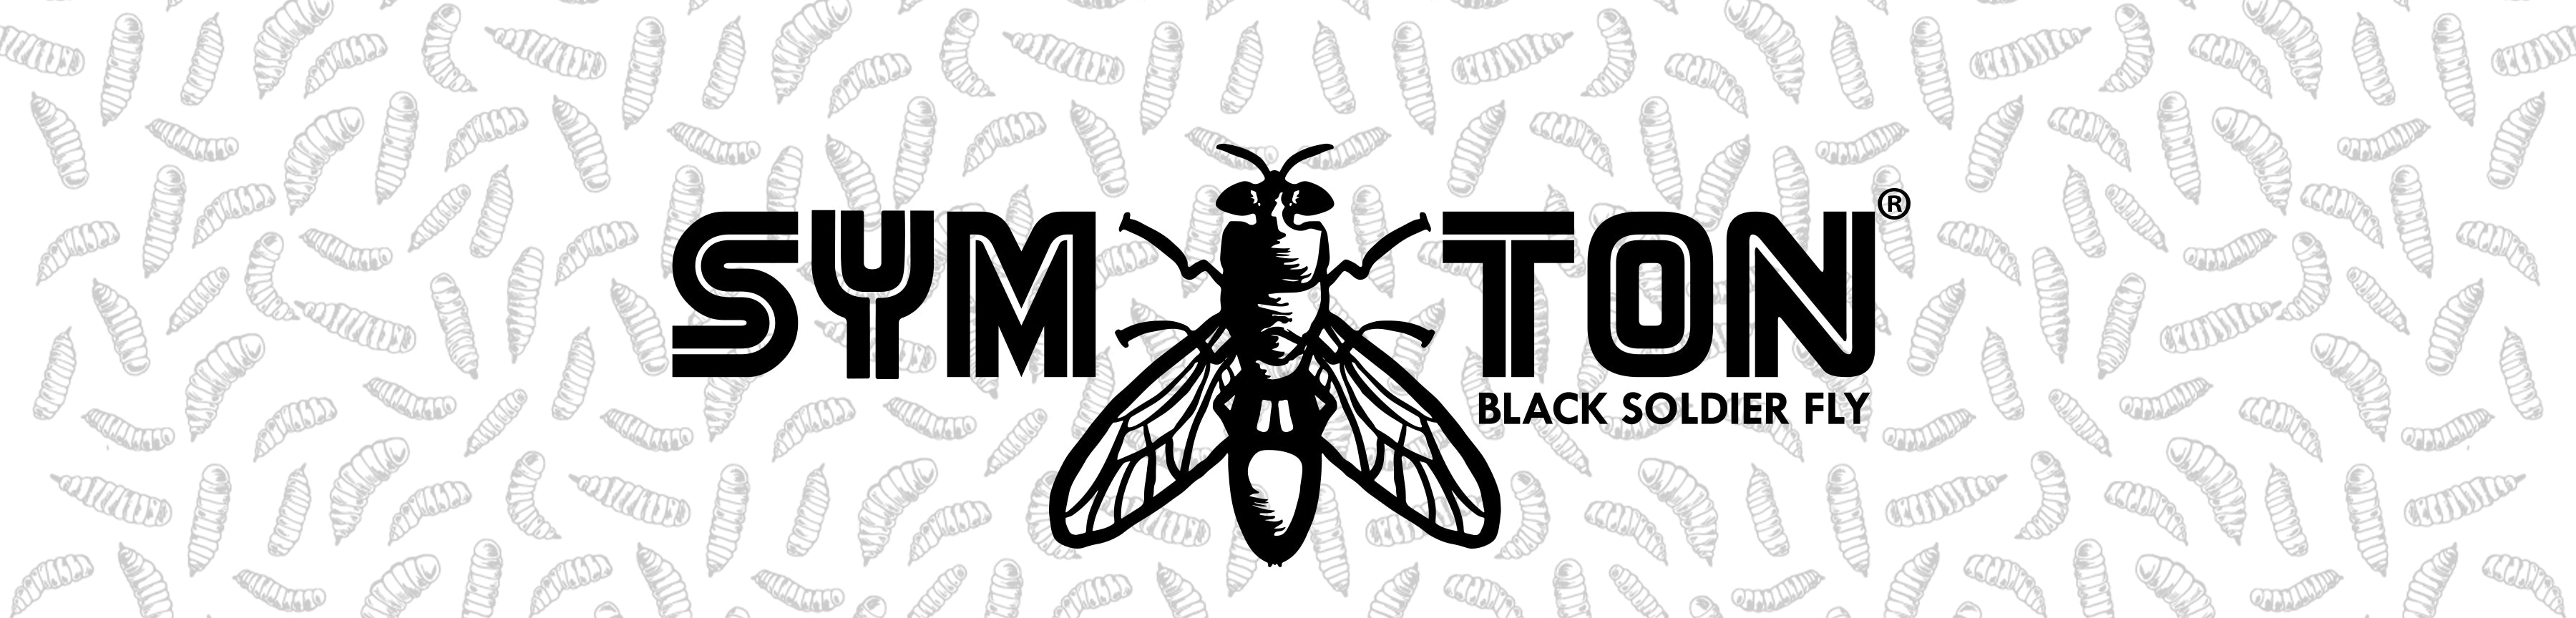 Symton Black Soldier Fly